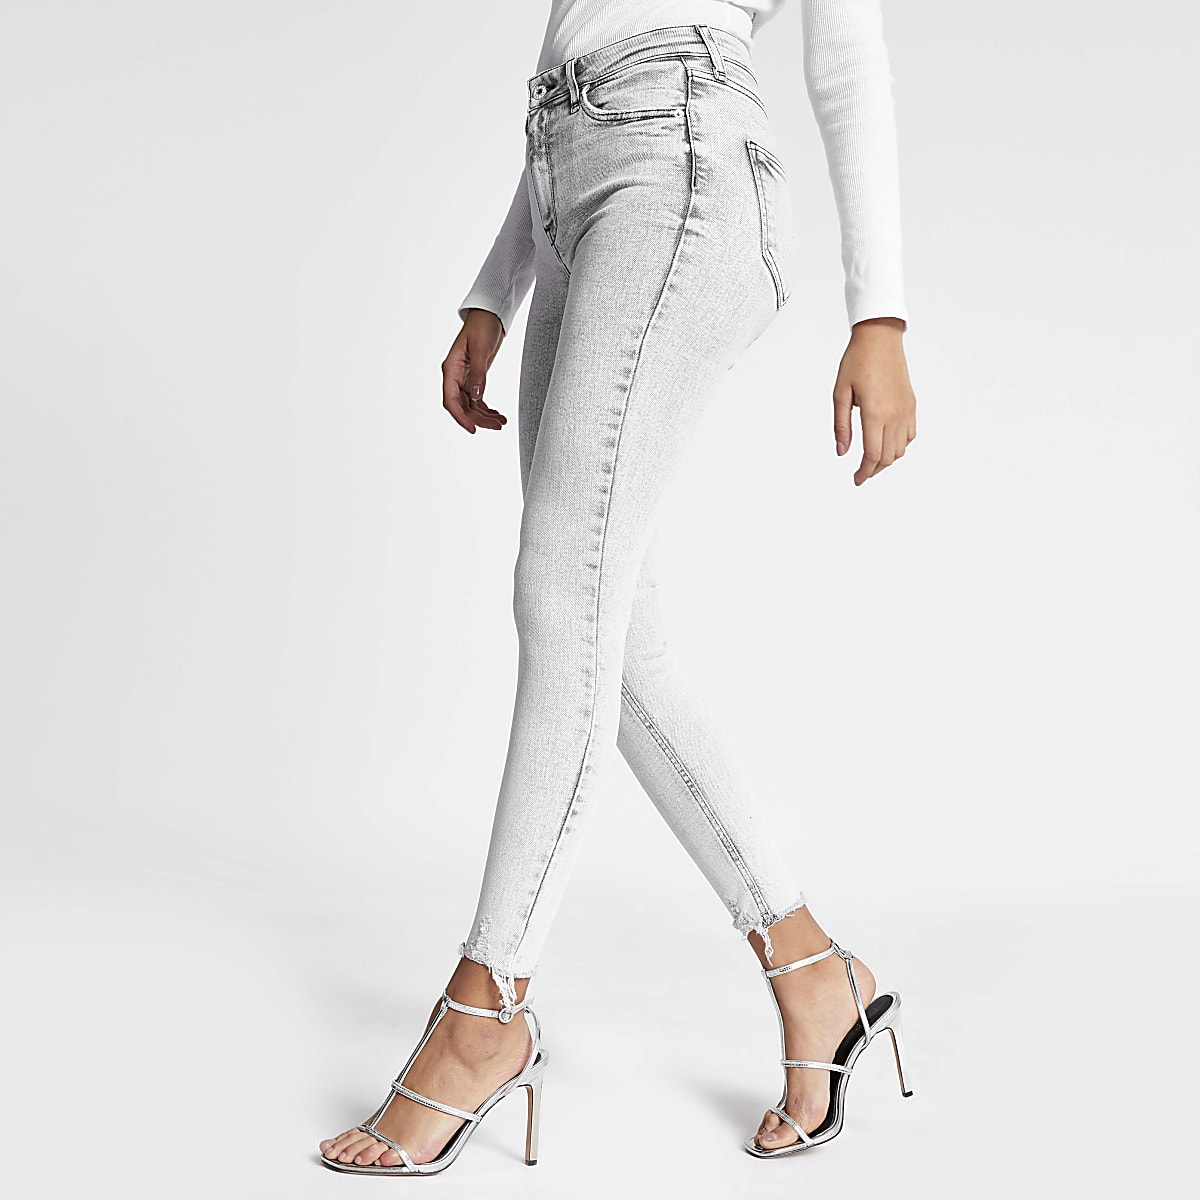 Grey Hailey high rise acid jeans